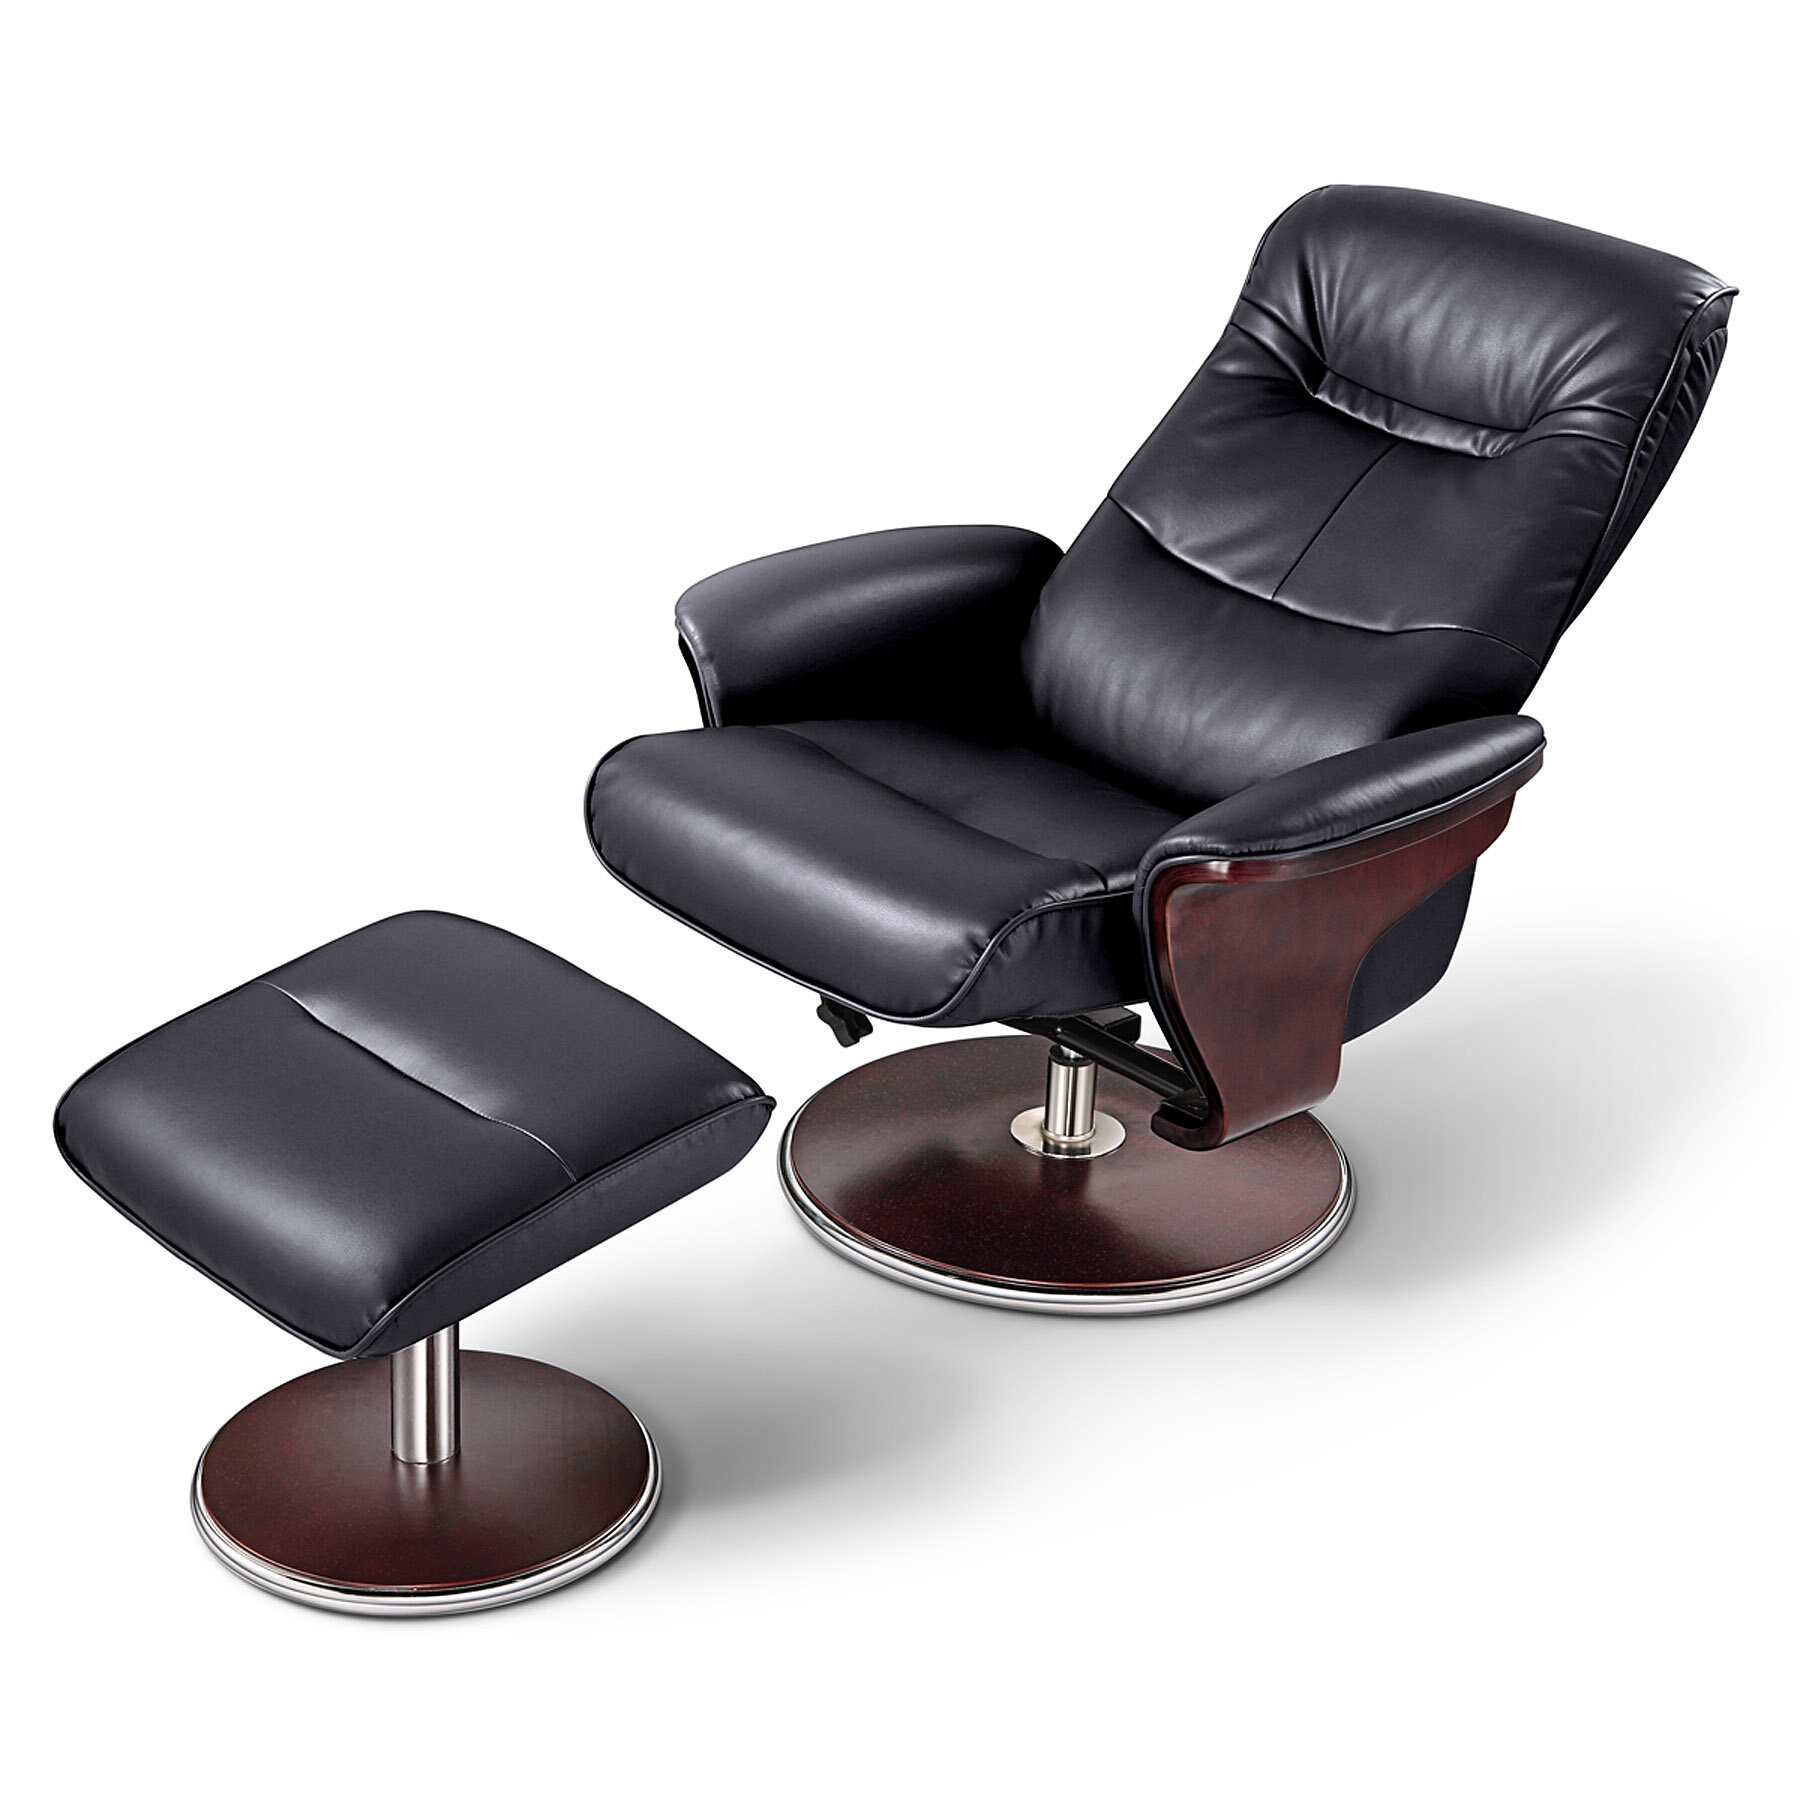 Brilliant Dirleton Manual Swivel Recliner With Ottoman Ncnpc Chair Design For Home Ncnpcorg